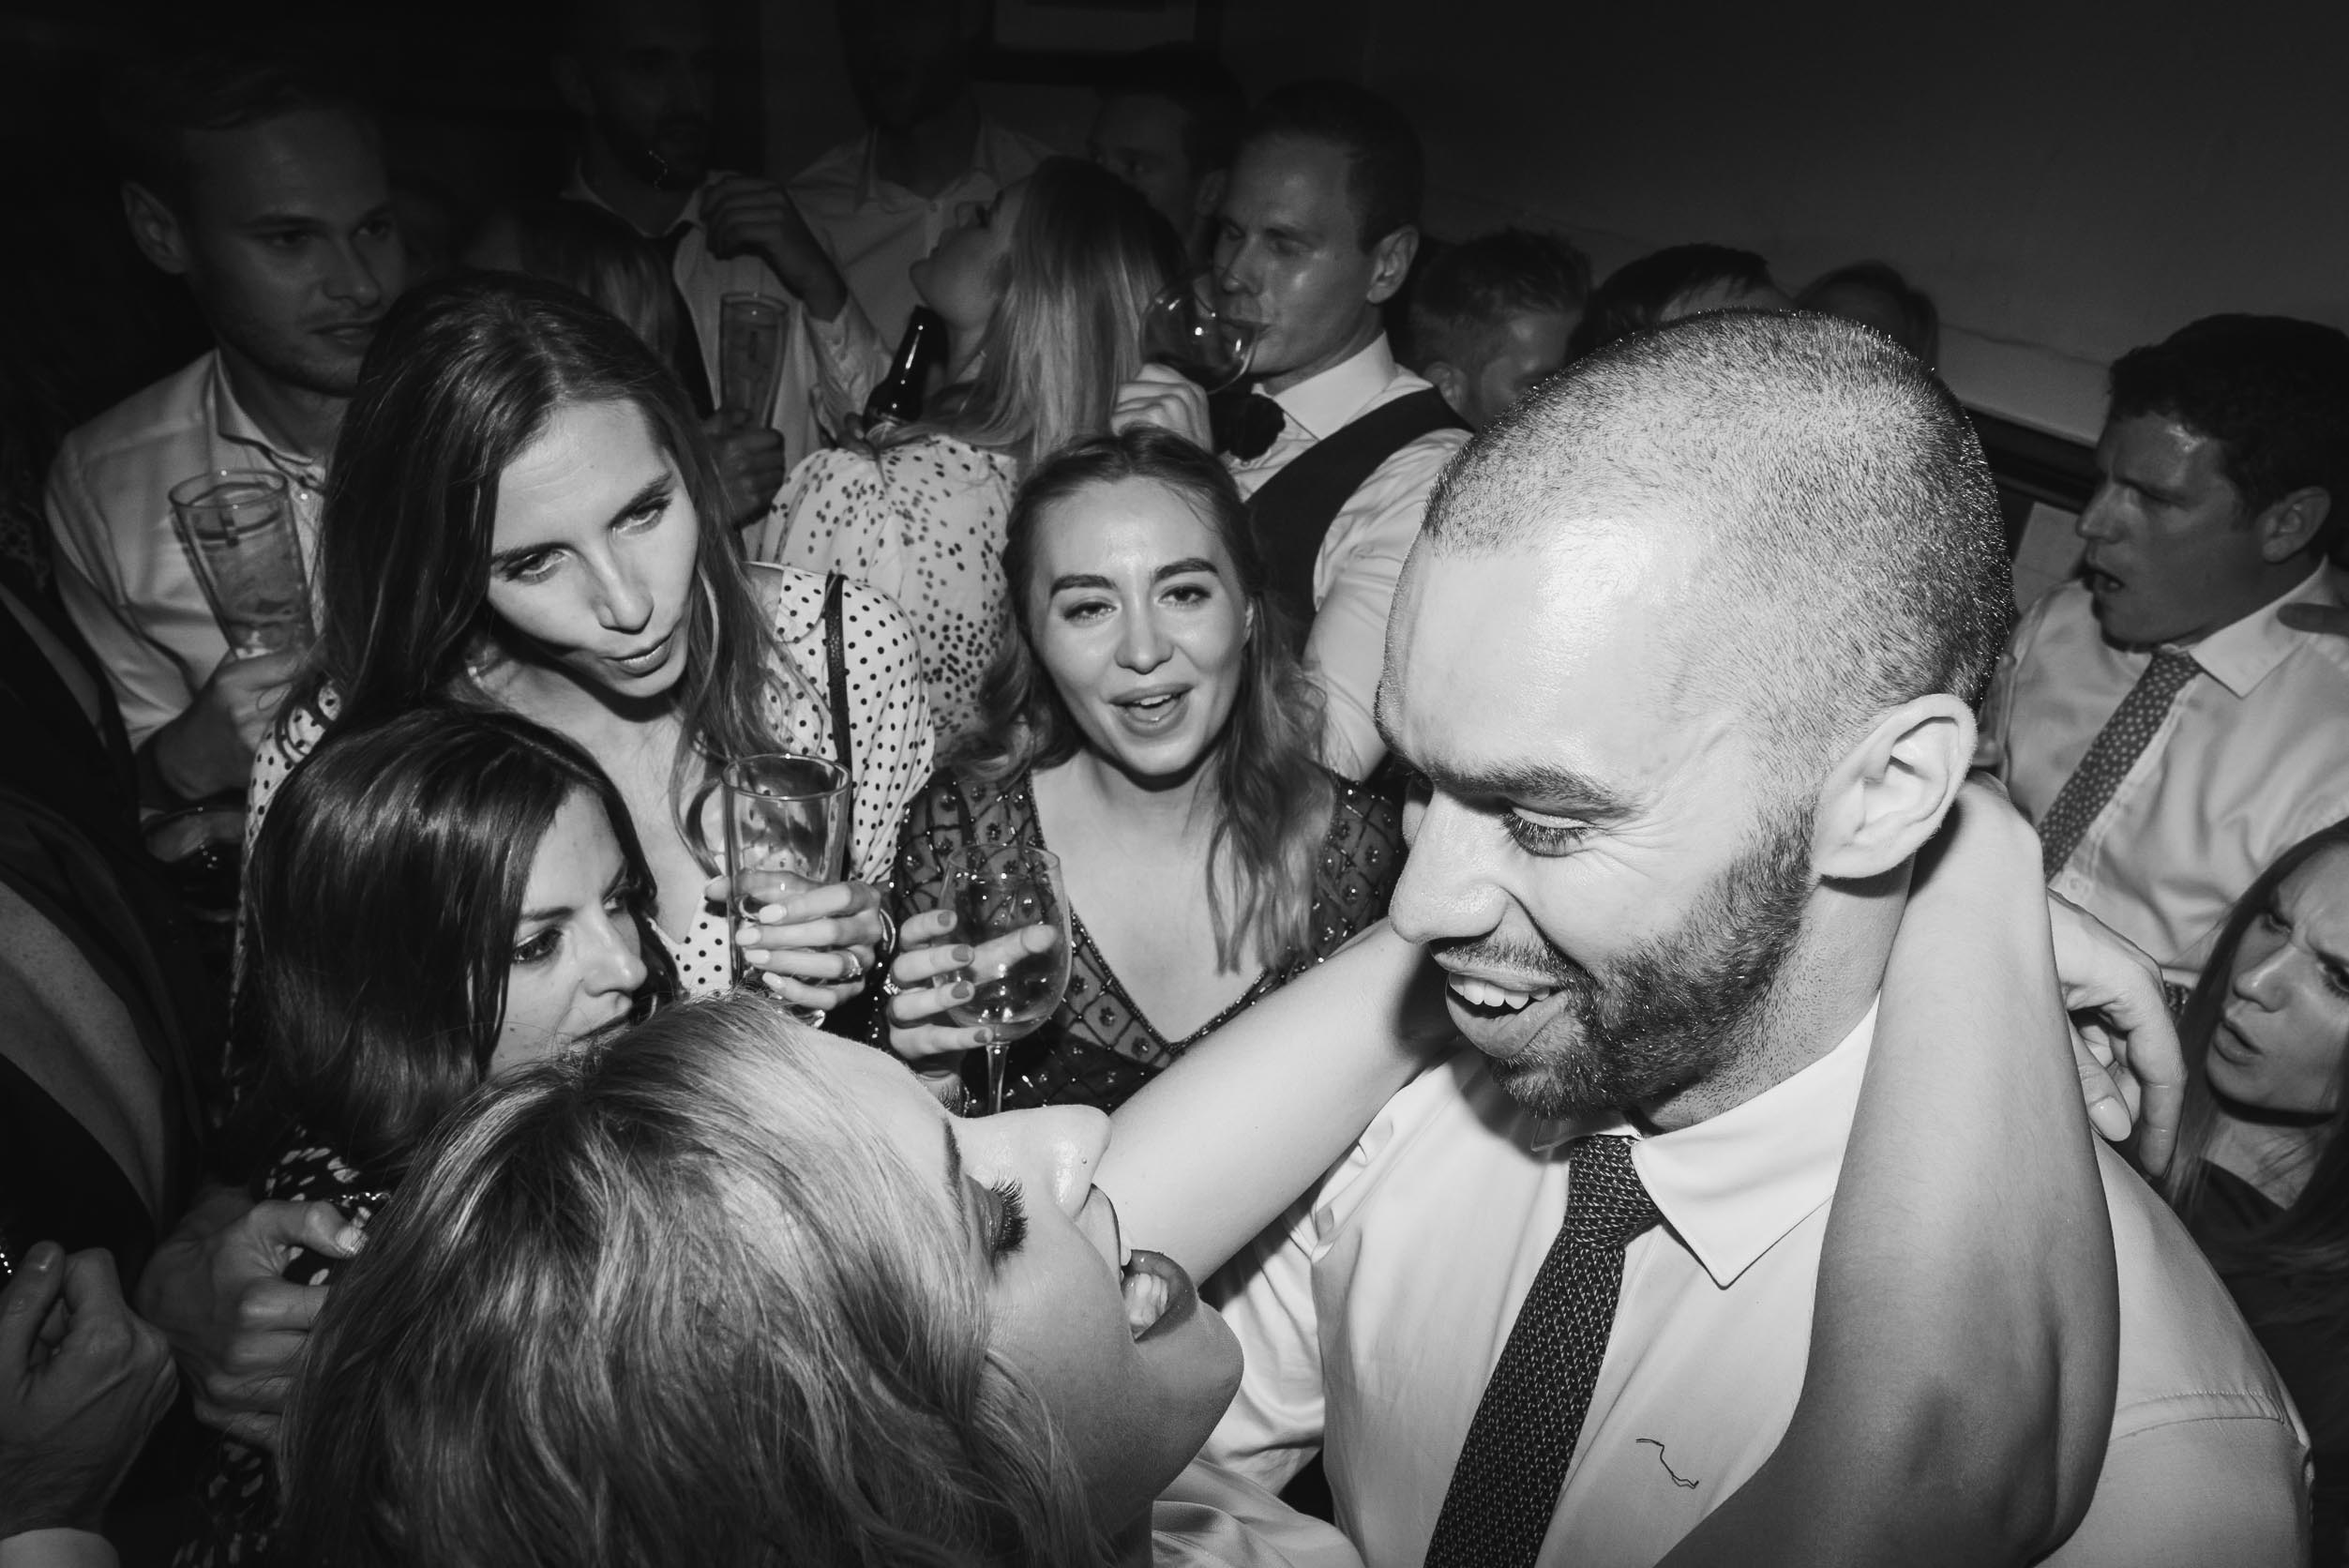 carine bea photography, pub wedding, The Lamb Tavern Leadenhall, crazy dance